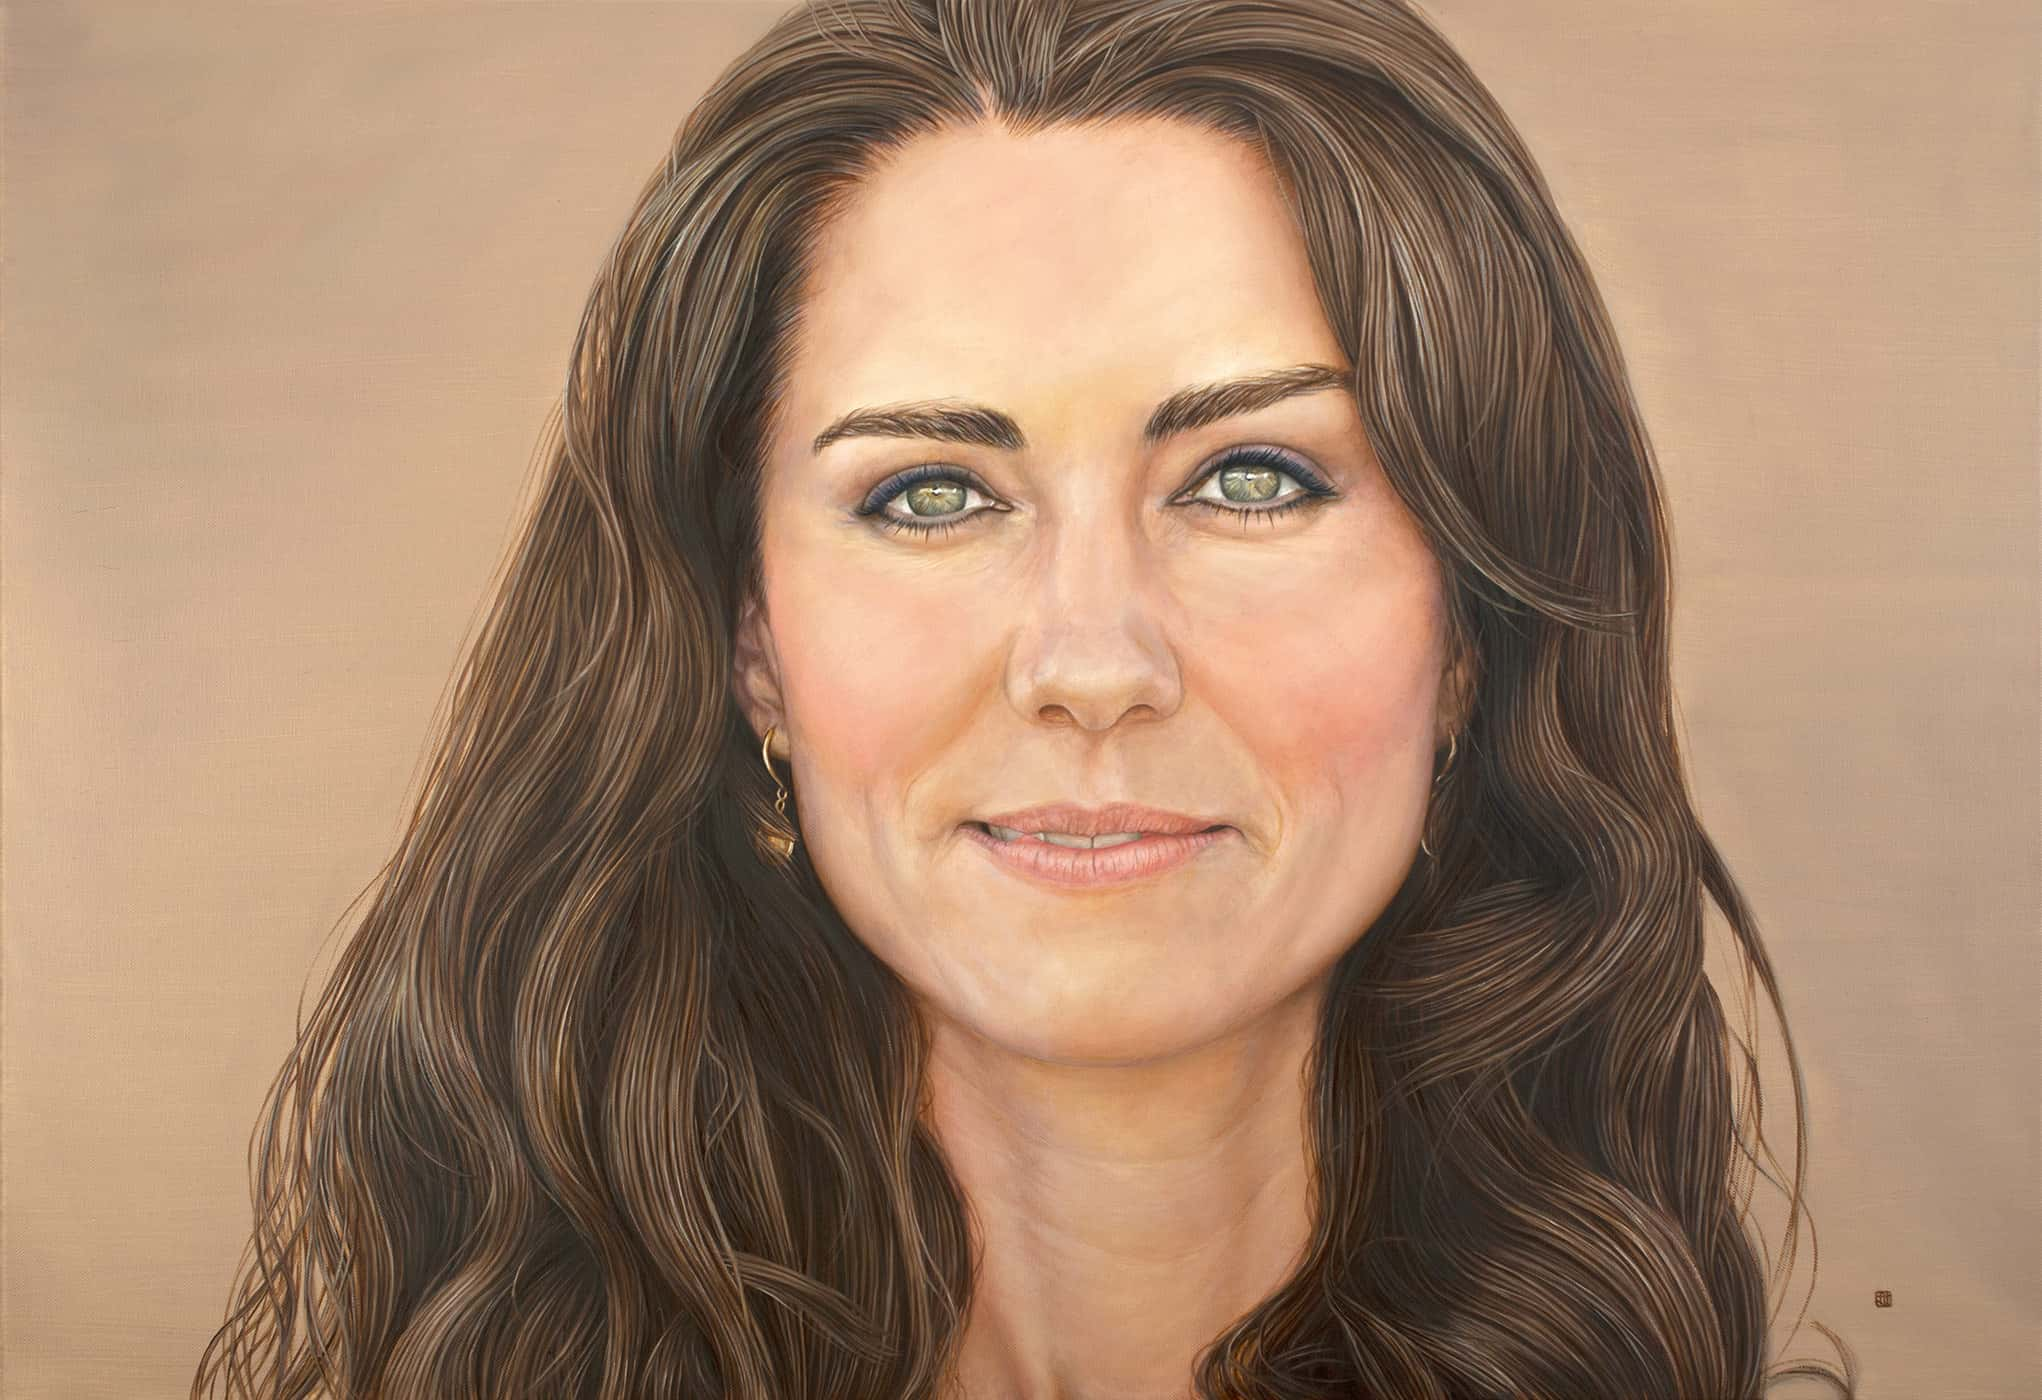 Amazing Duchess Kate Portrait